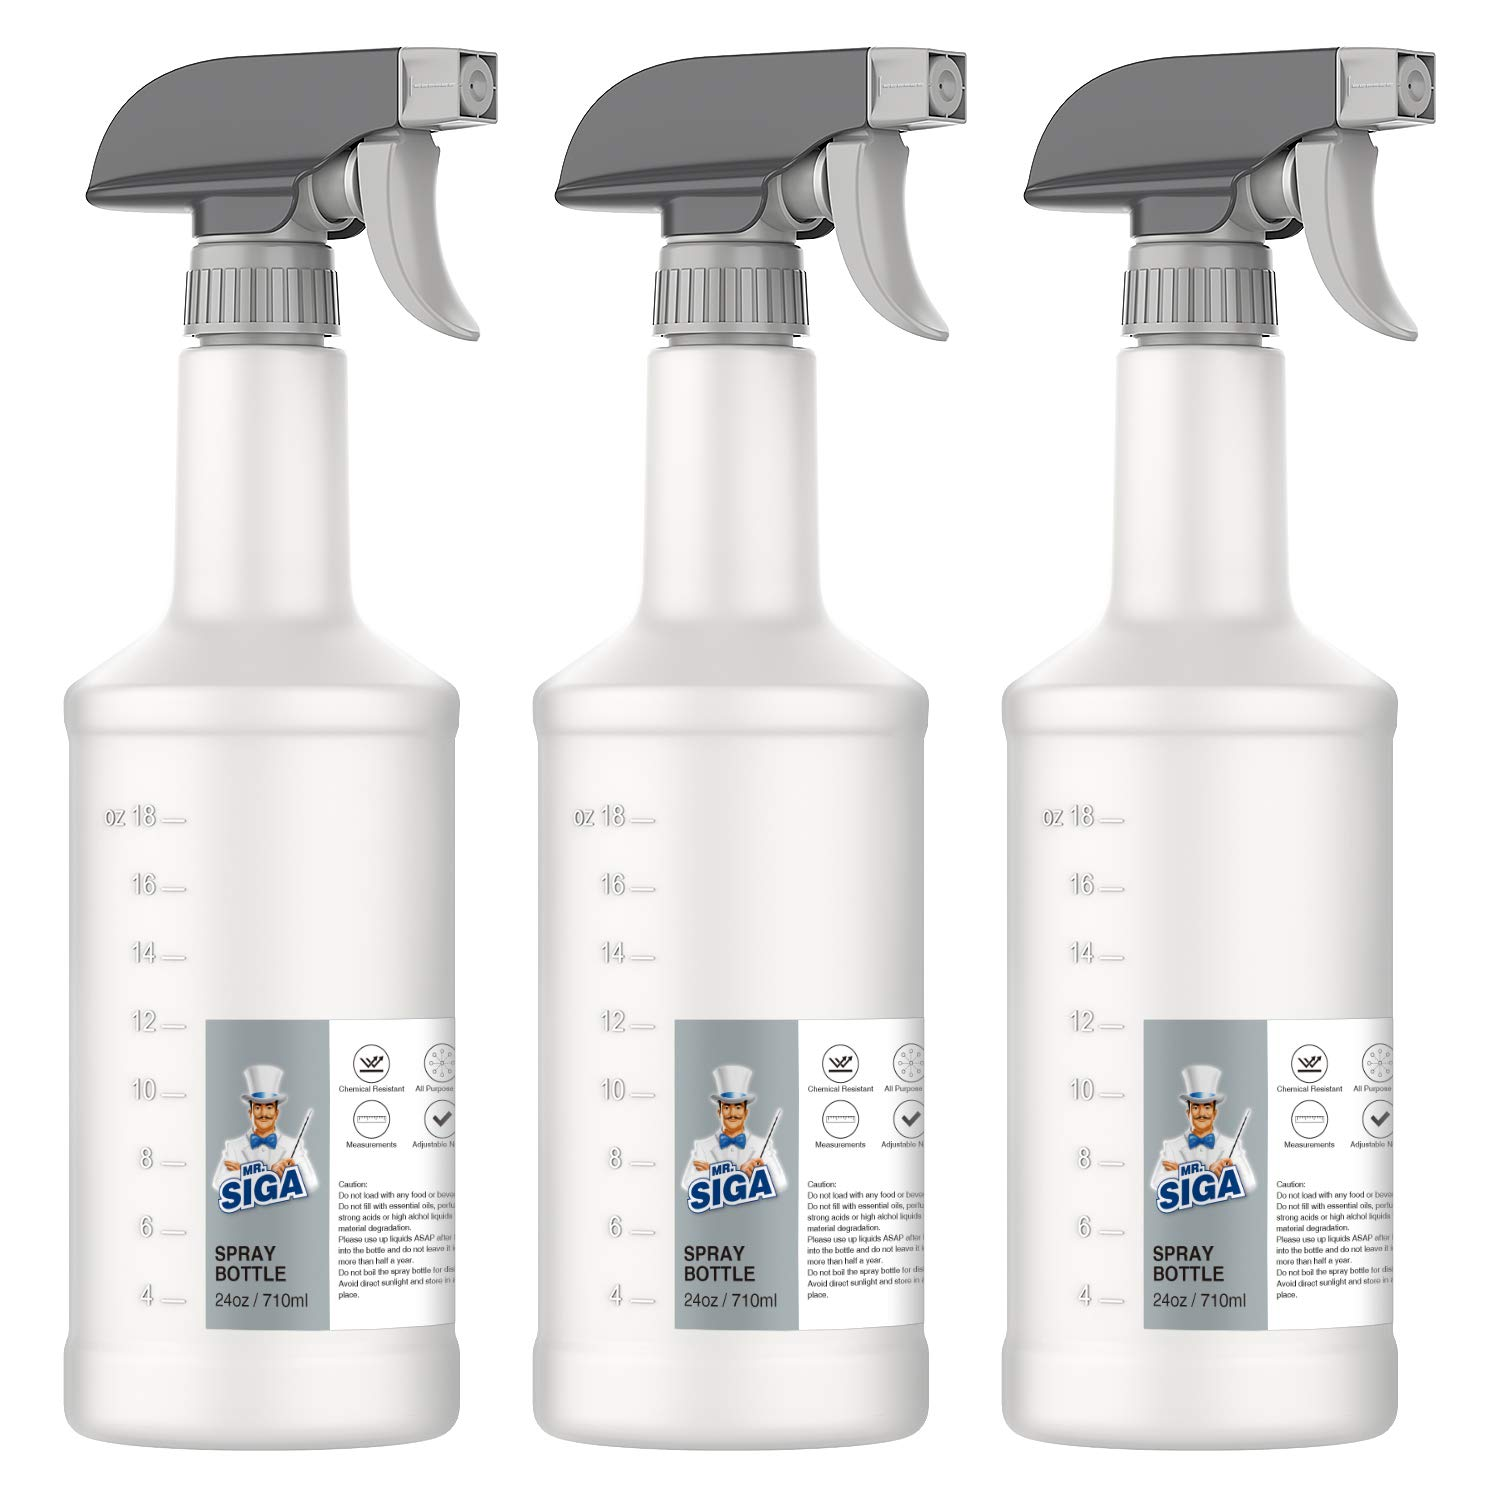 MR.SIGA 24 oz Empty Plastic Spray Bottles for Cleaning Solutions, Heavy Duty Household Reusable Spray Bottles with Measurements and Adjustable Leak Proof Nozzle, 3 Pack